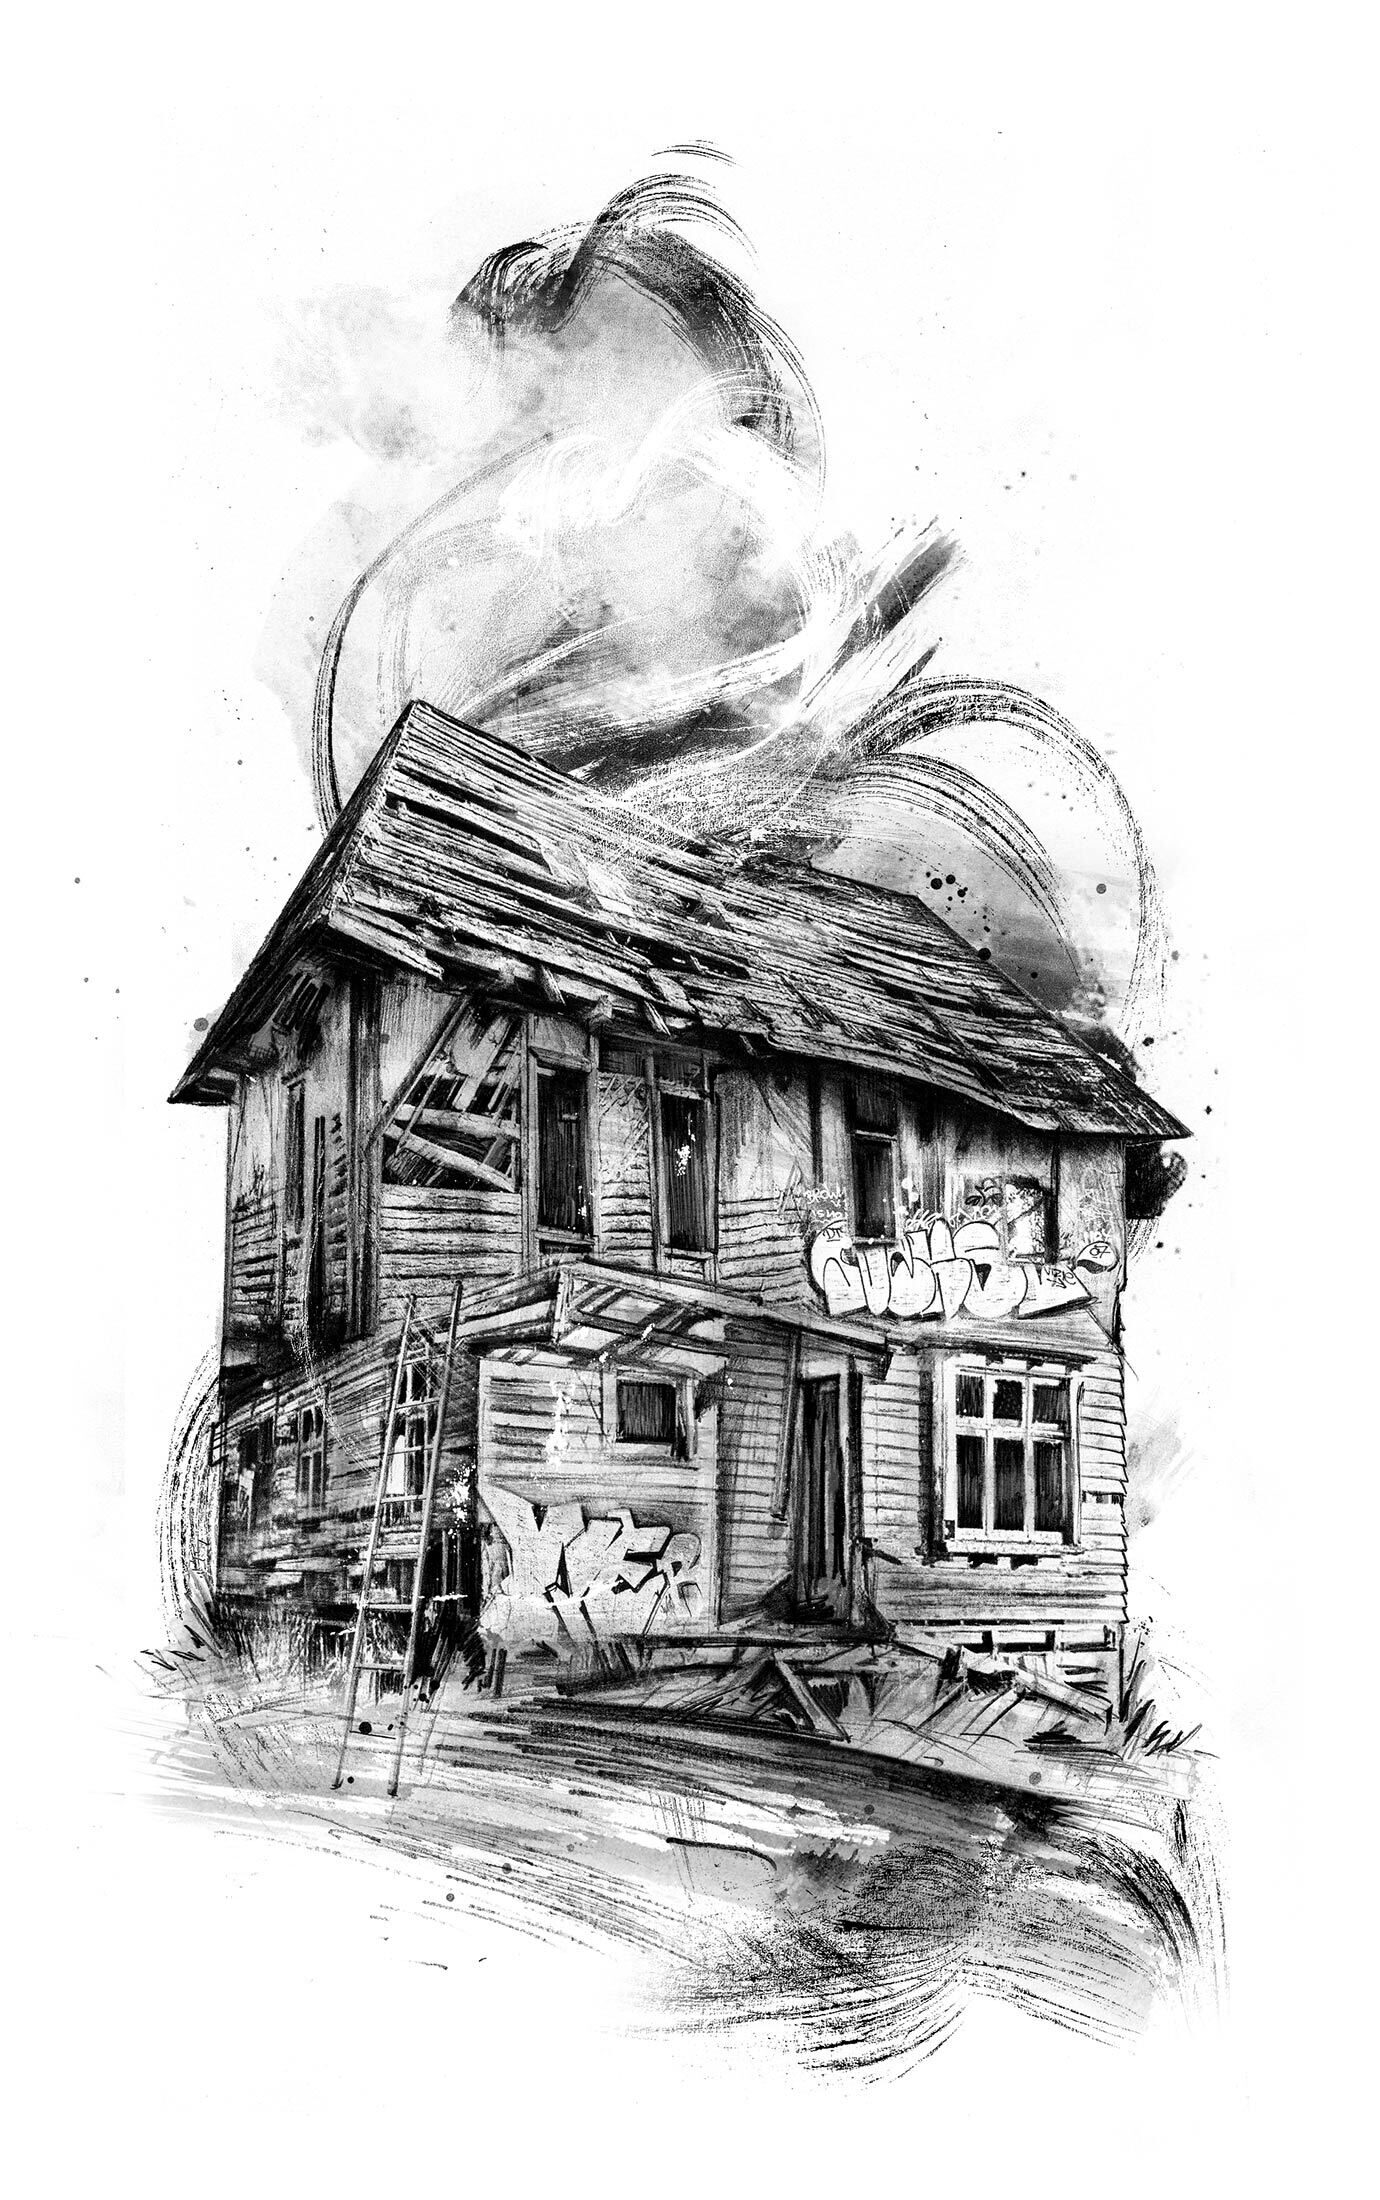 Old house bombing graffiti illustration drawing sketch - Kornel Illustration | Kornel Stadler portfolio